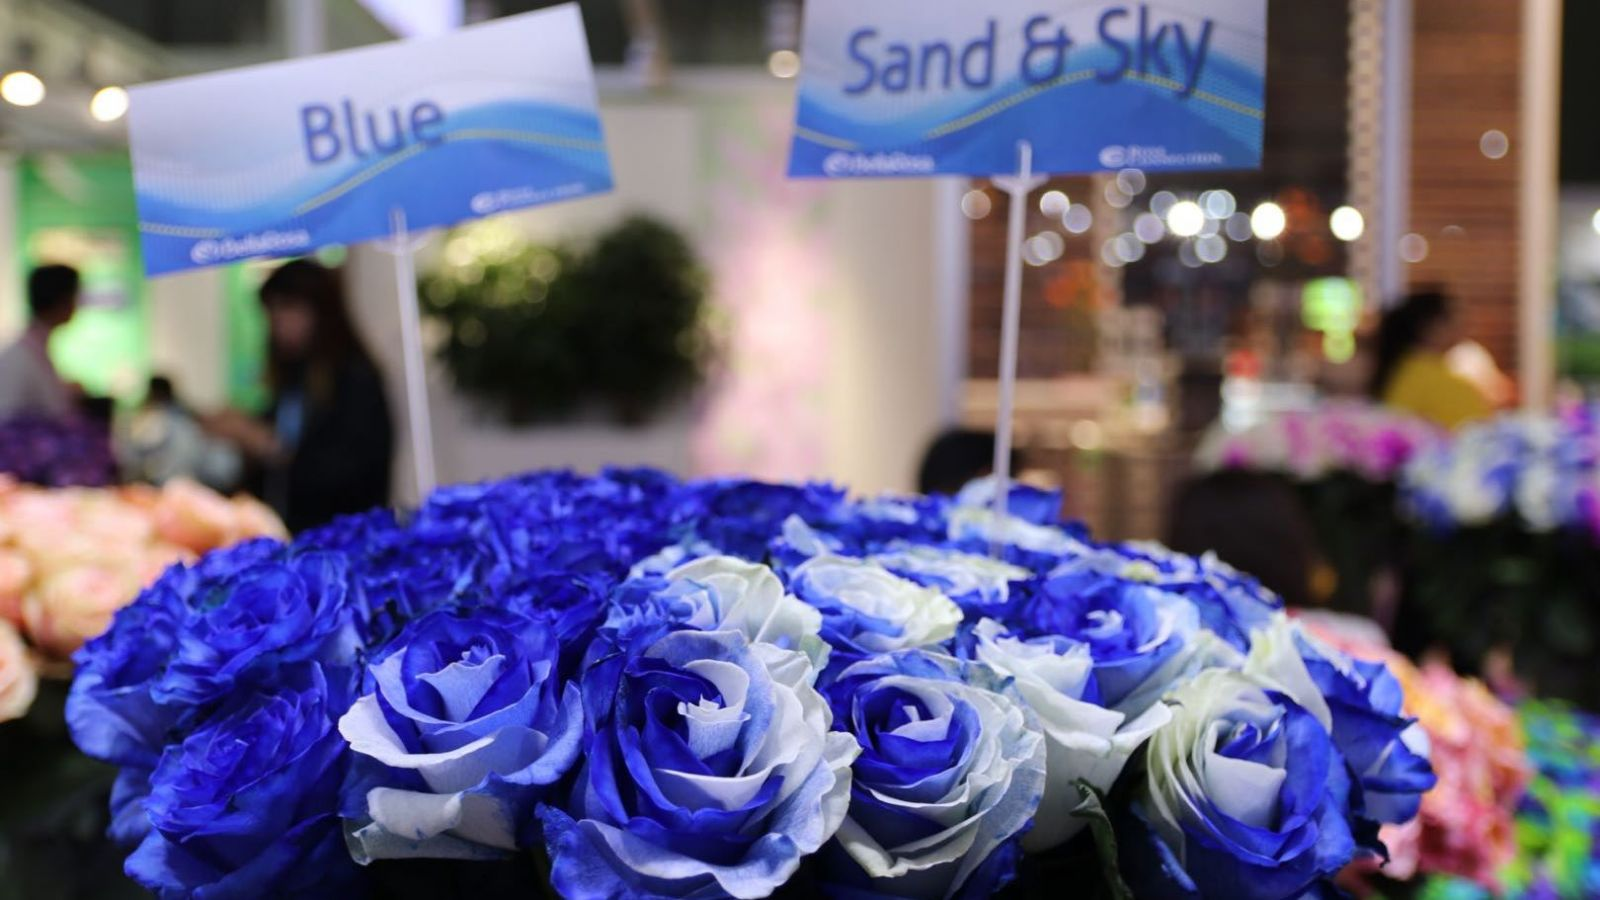 Blue and Sand & Sky roses